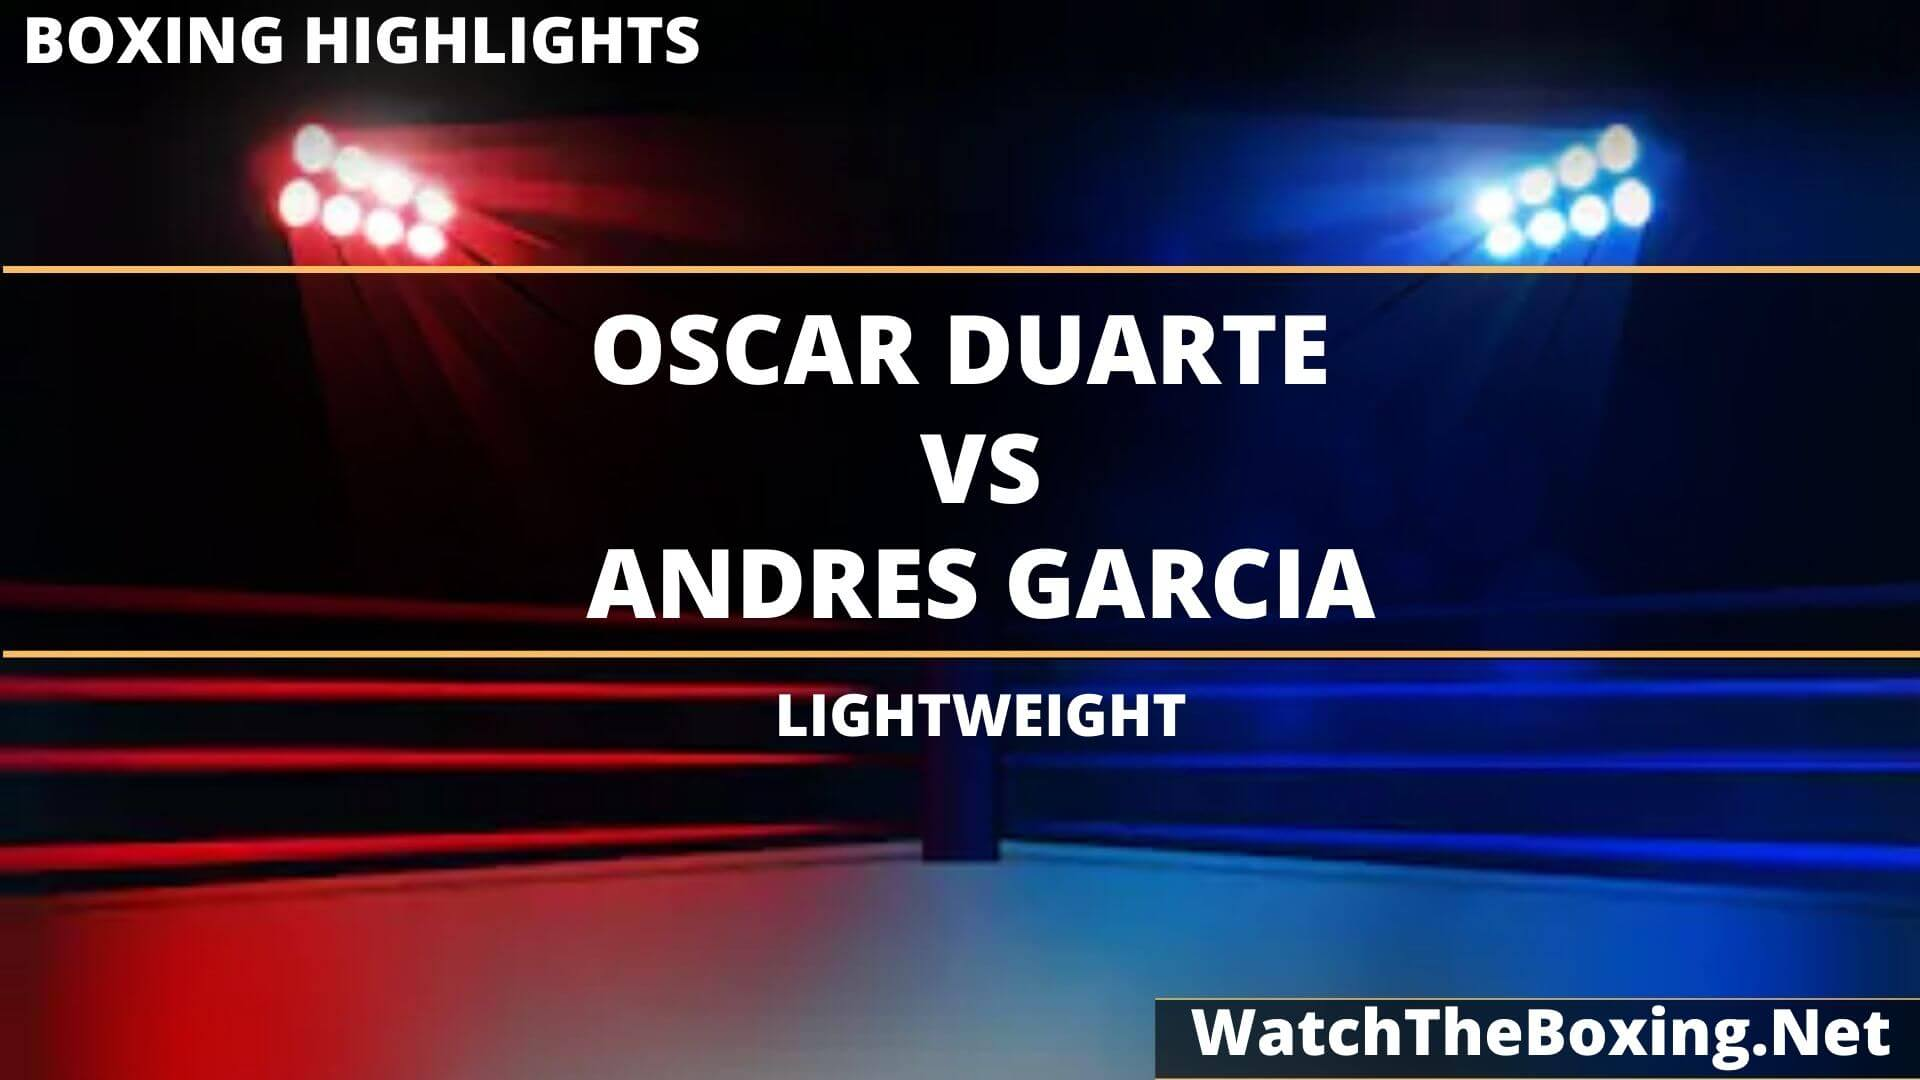 Oscar Duarte Vs Andres Garcia Highlights 2020 Lightweight